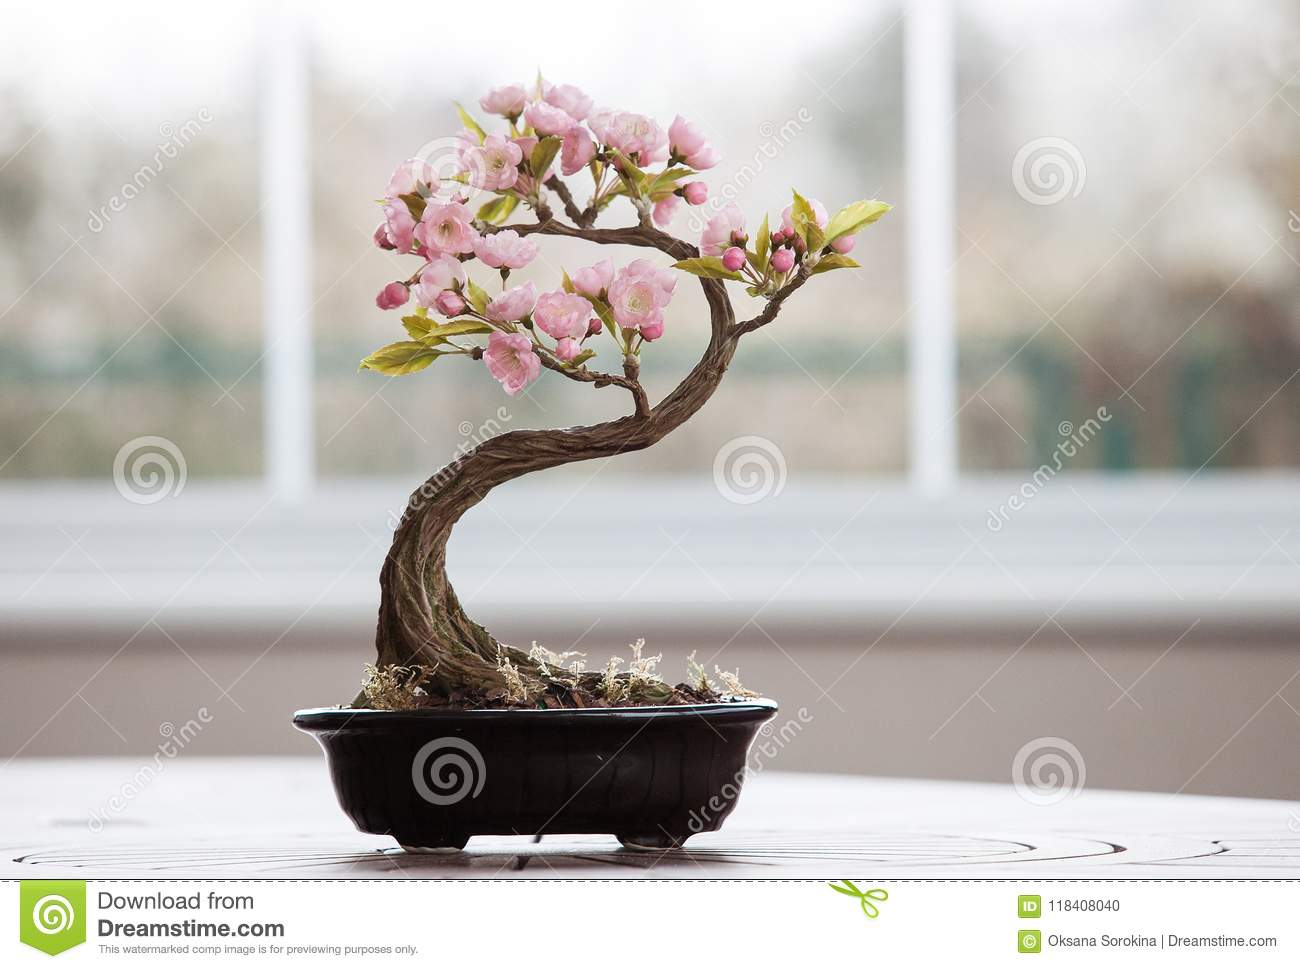 Artificial bonsai tree with flowers